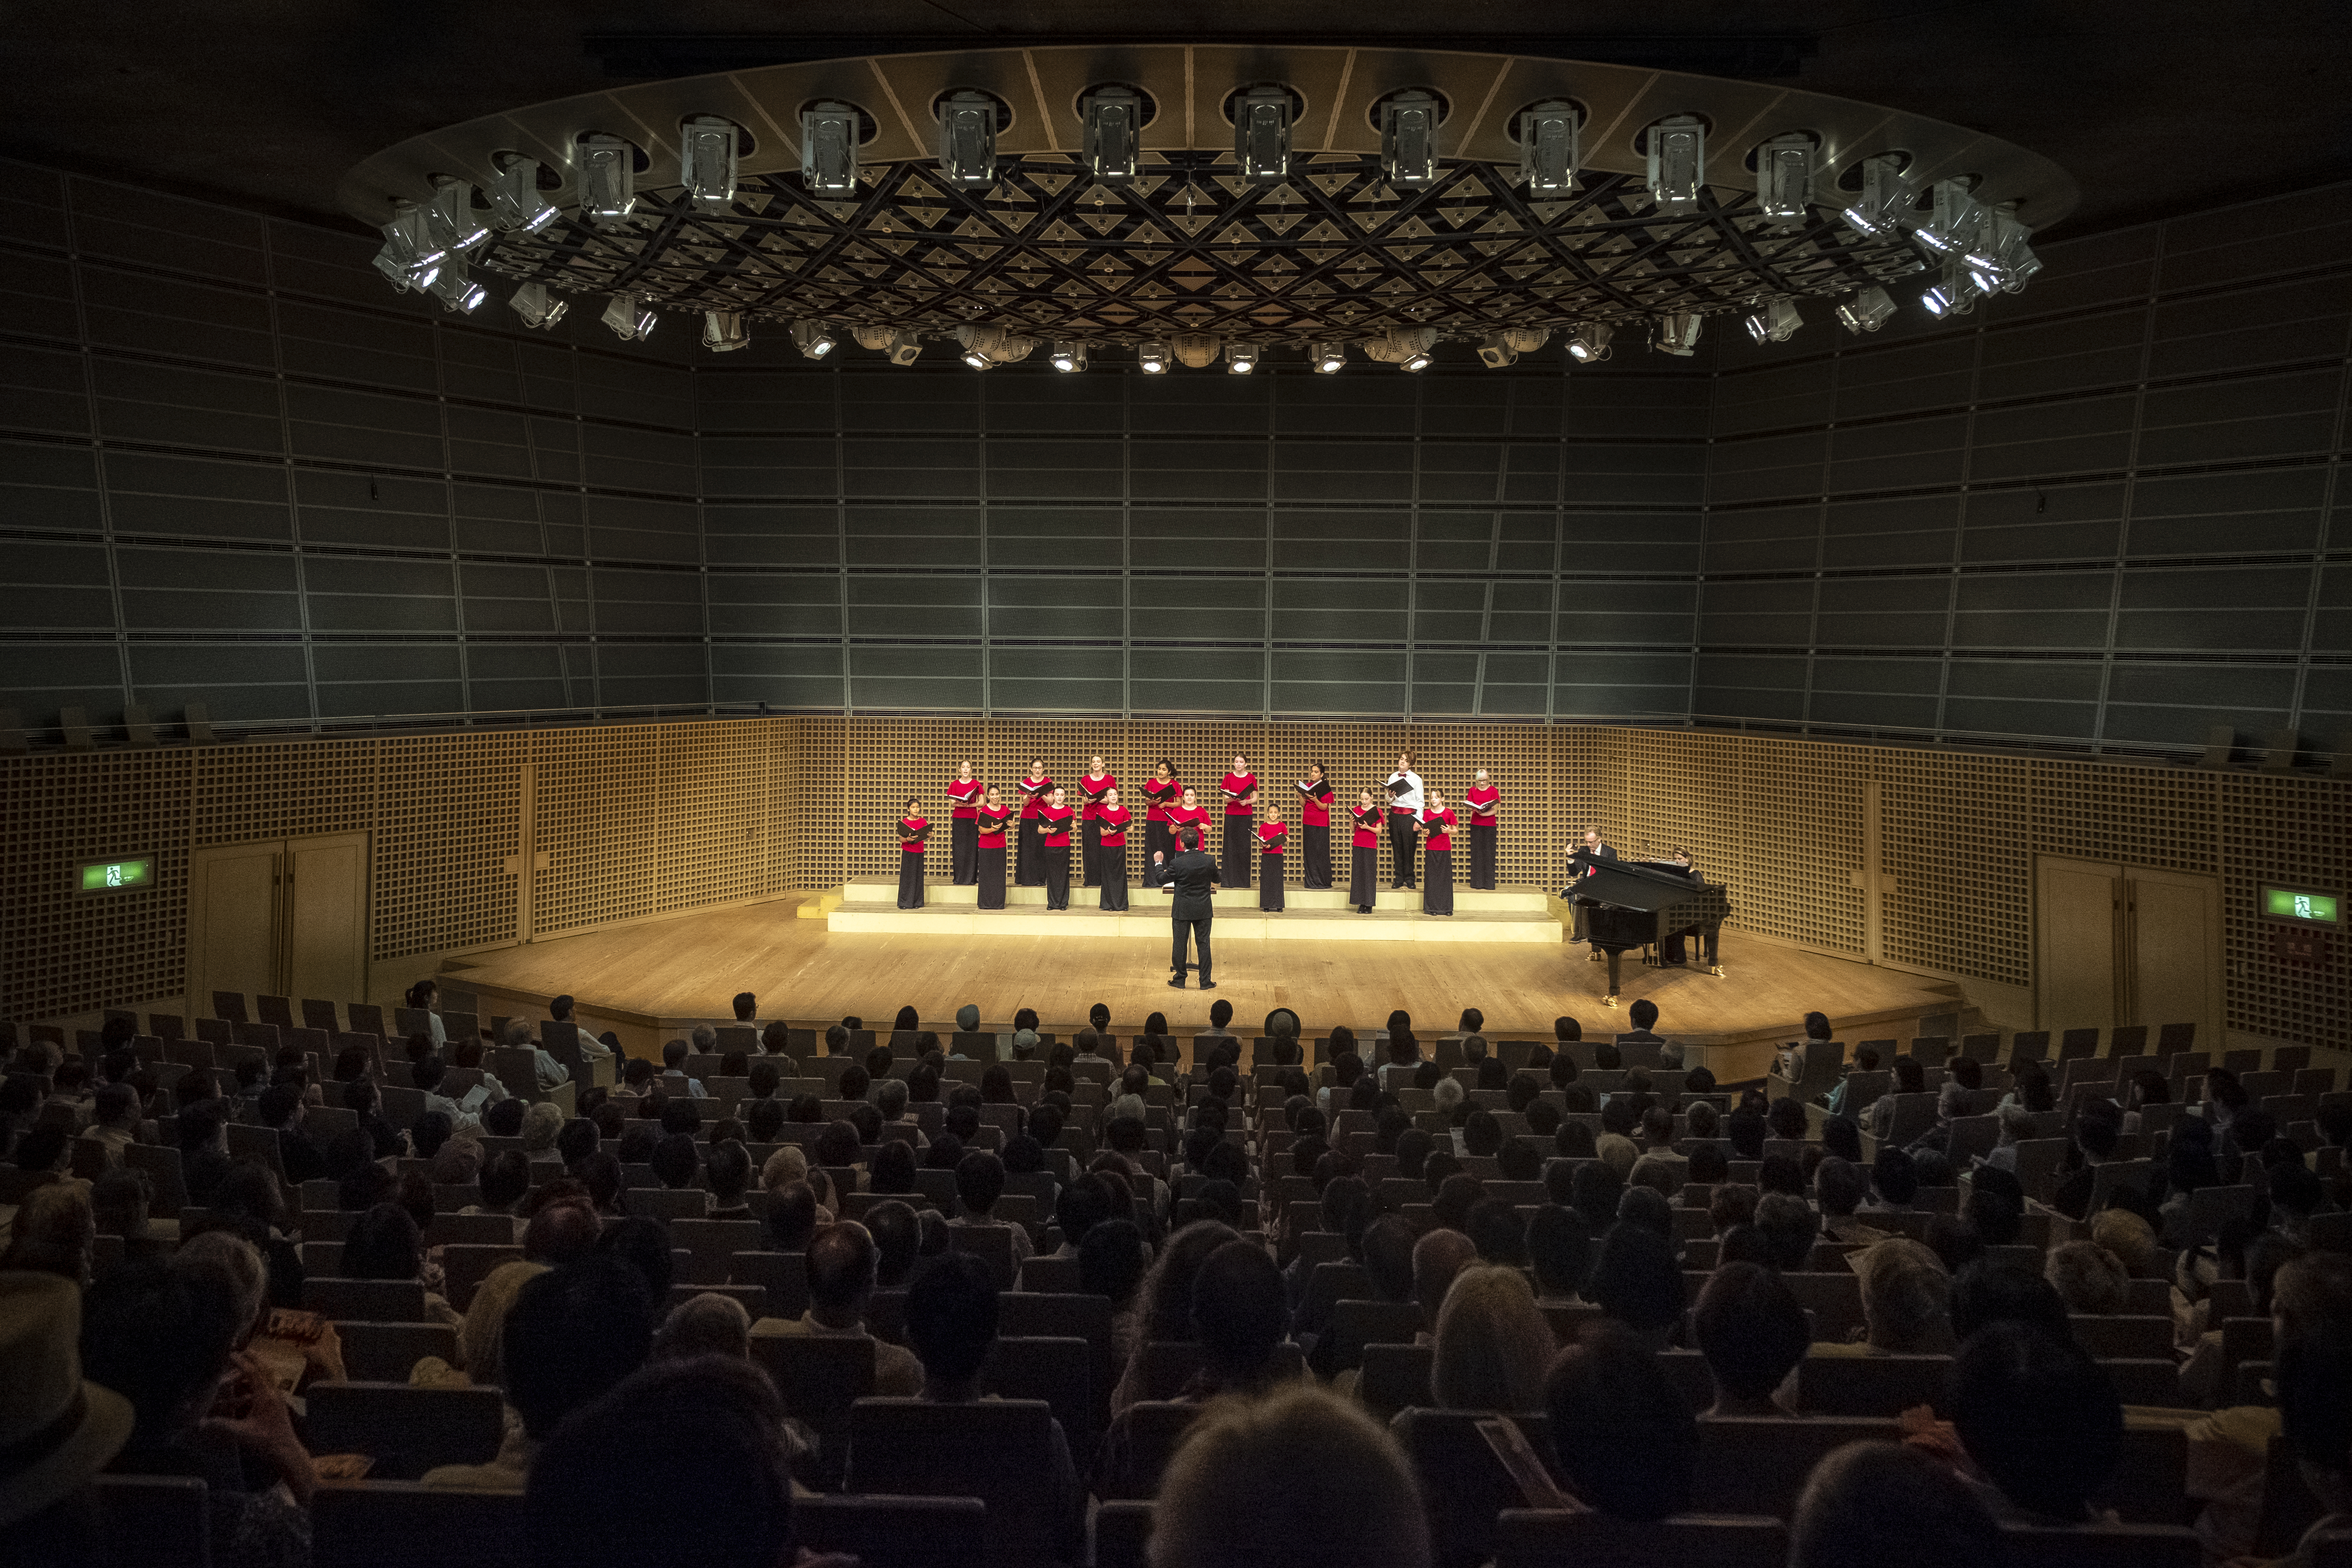 Kyoto Concert Hall performance, MUSYCA